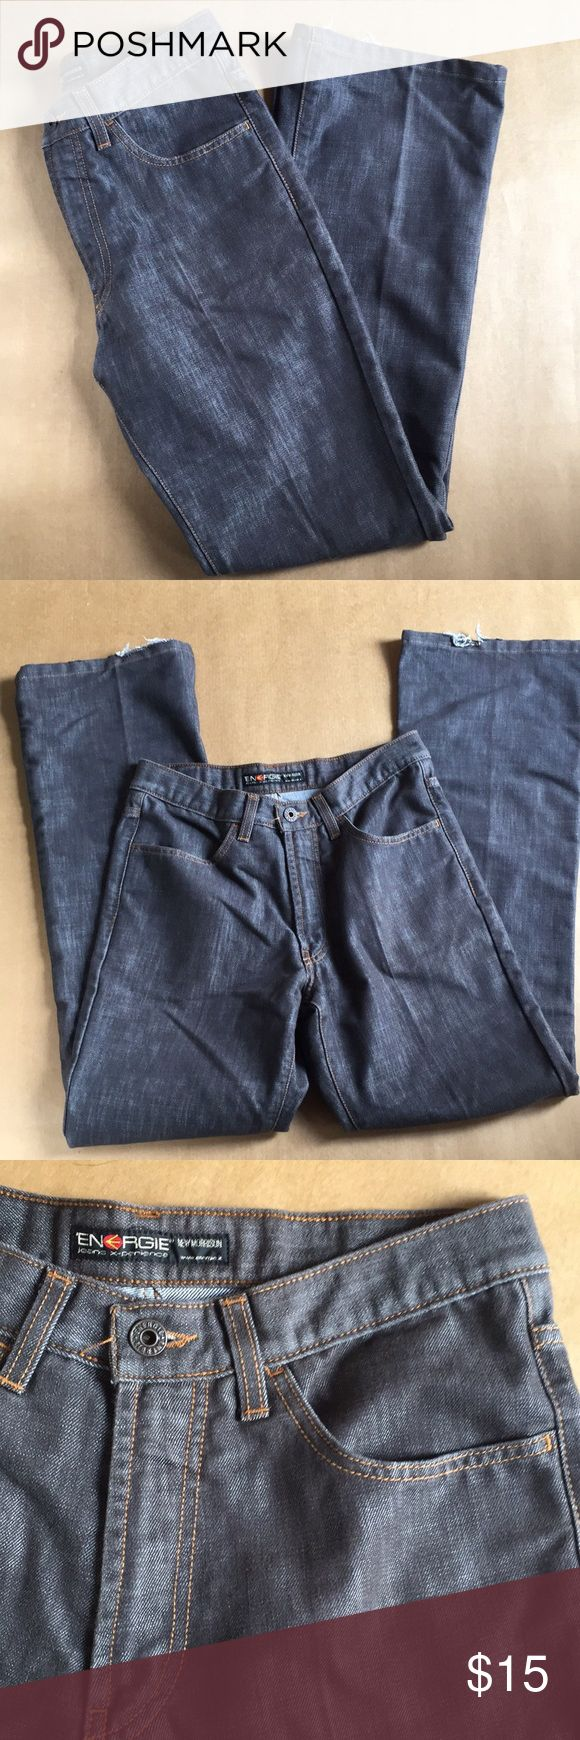 Gray Bootcut Energie Jeans These jeans are in good condition. They have some light wear and the bottom hens have some fraying. They are size 30. The inseam is 31 inches and the waist is 28 inches. Energie Jeans Boot Cut